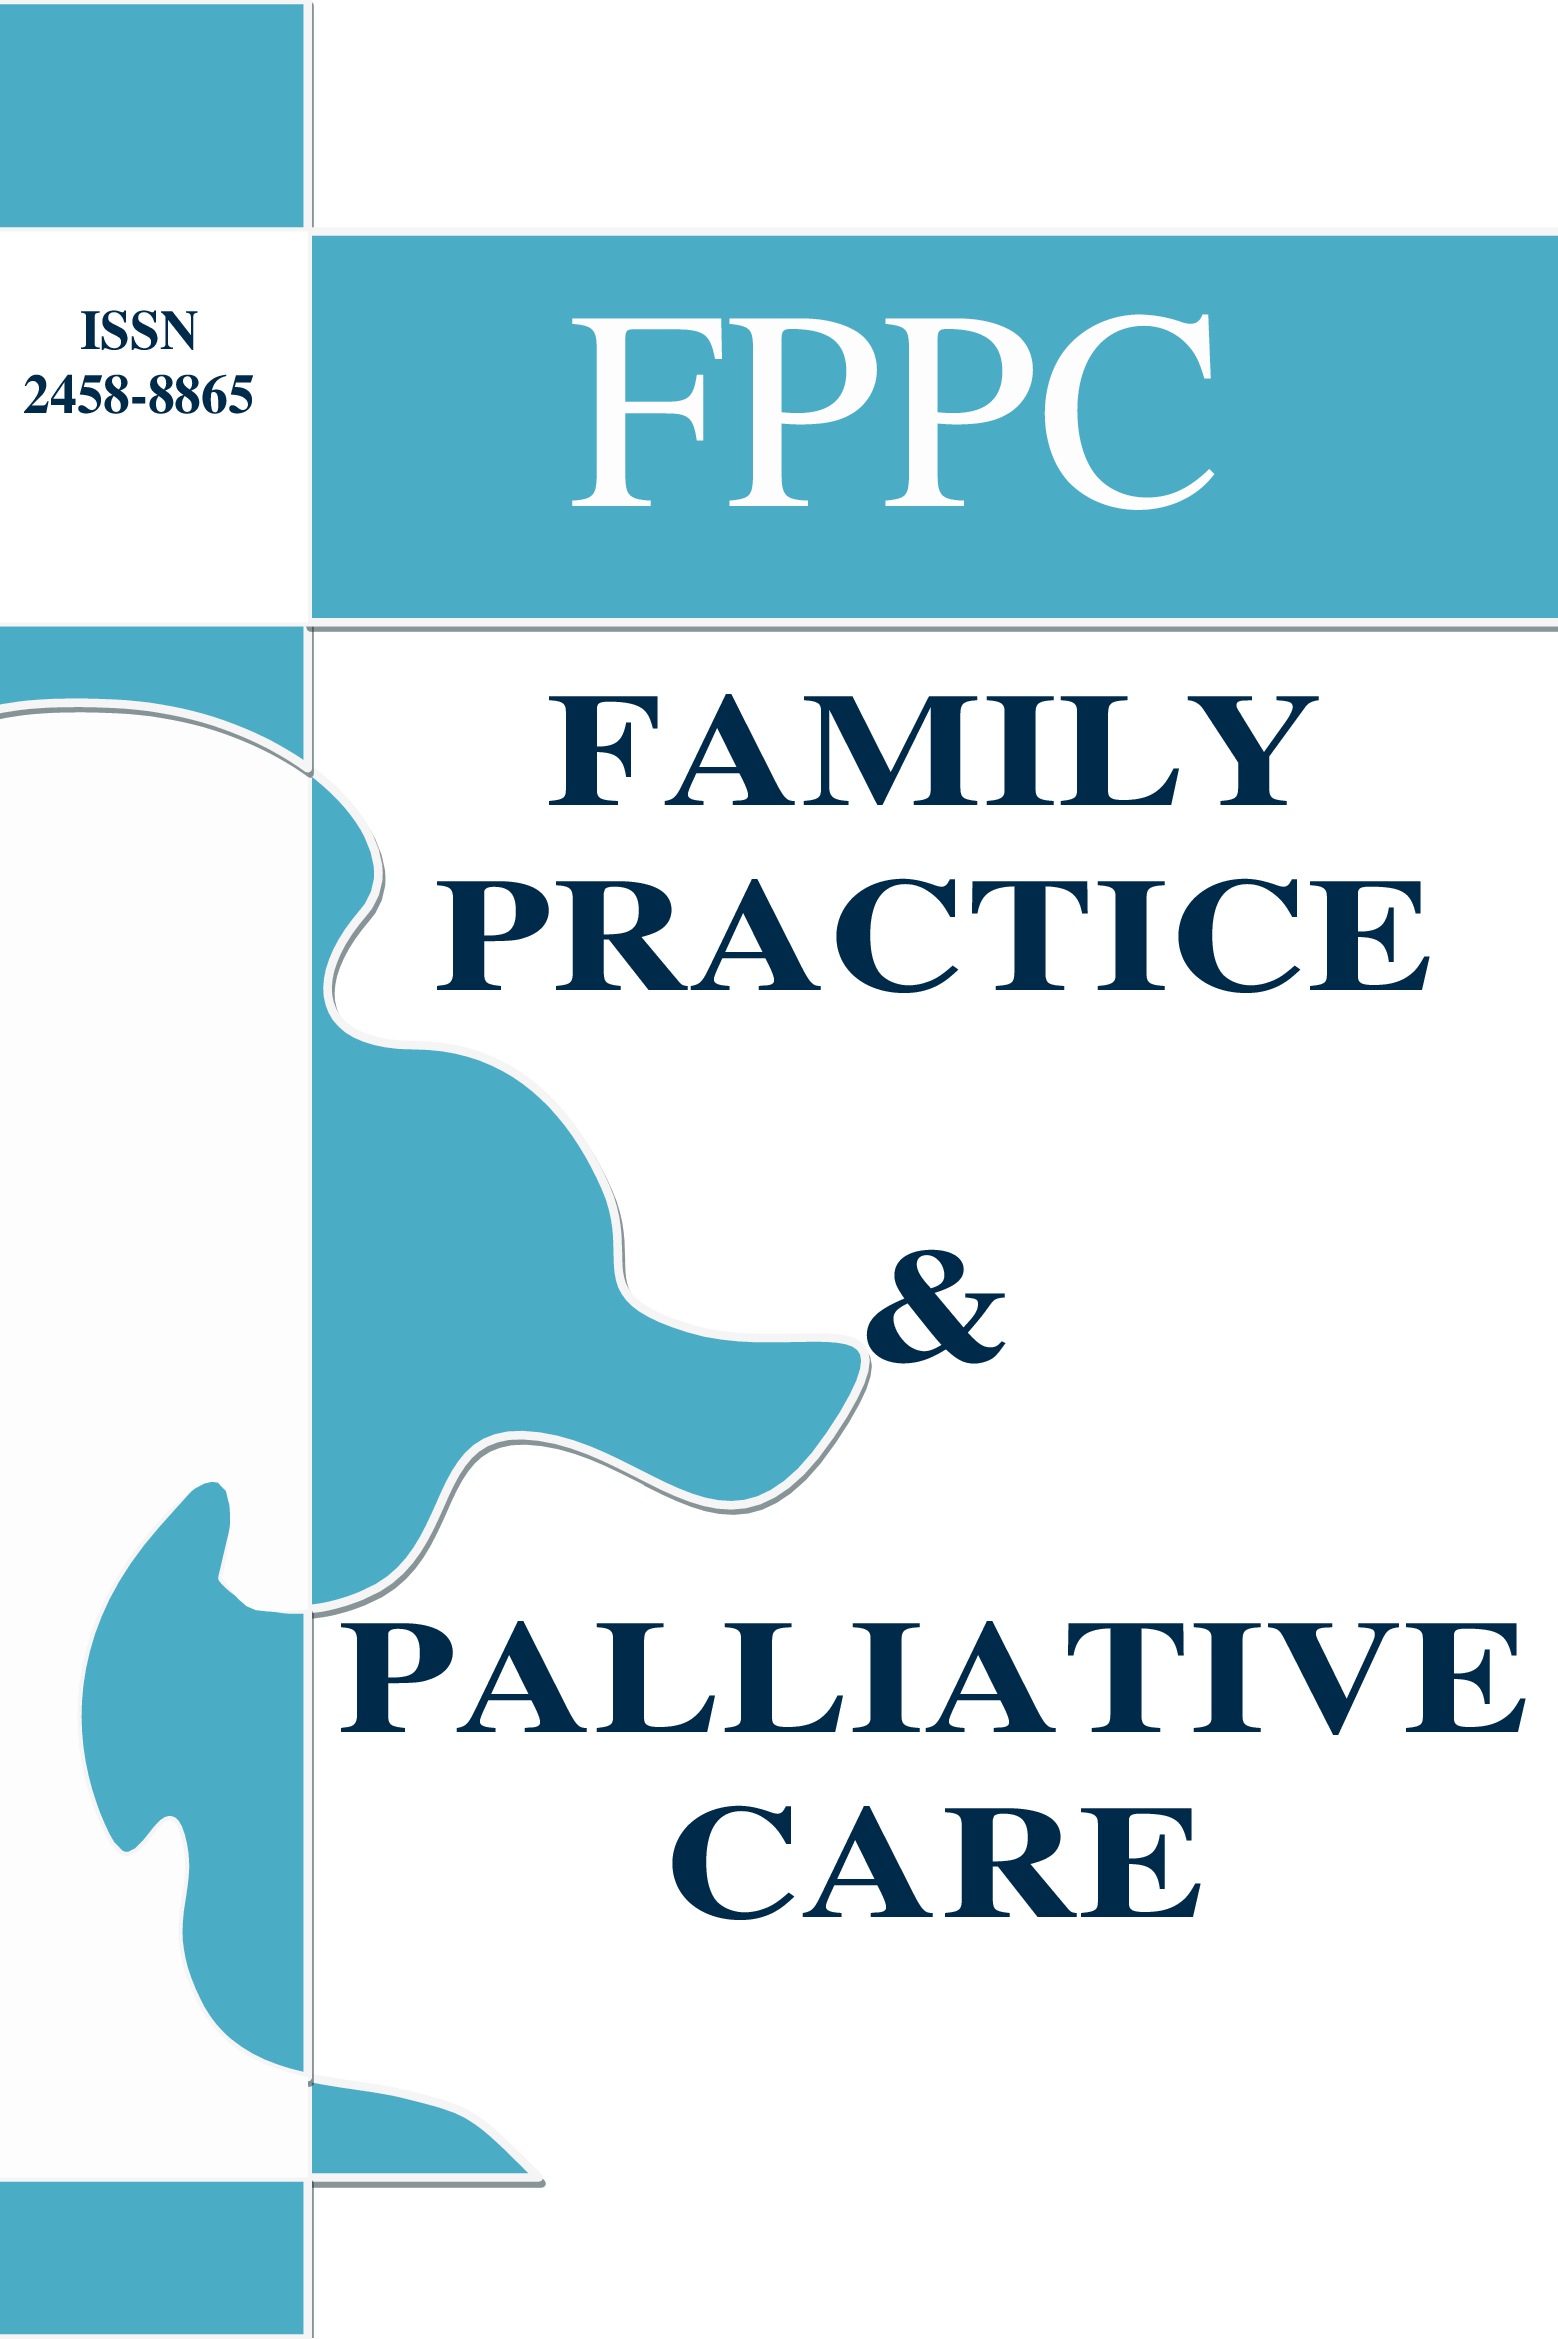 FAMILY PRACTICE AND PALLIATIVE CARE